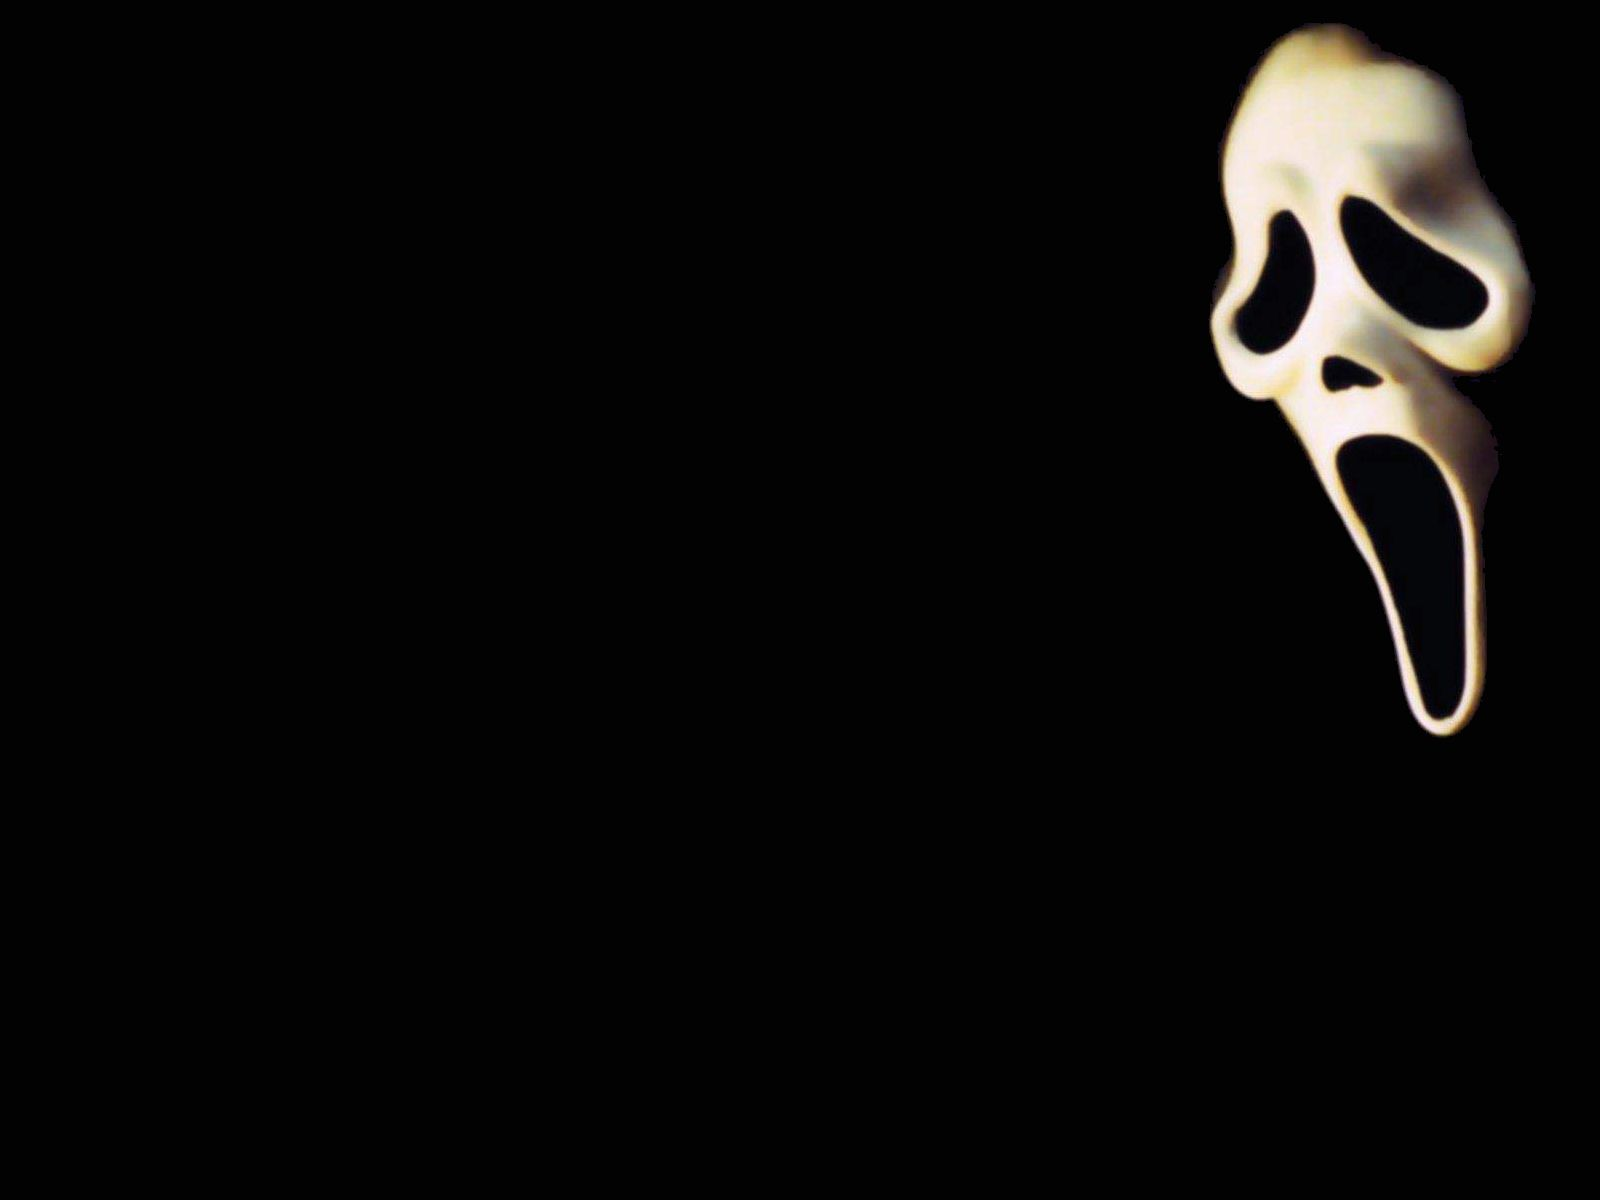 Ghost Face Wallpaper